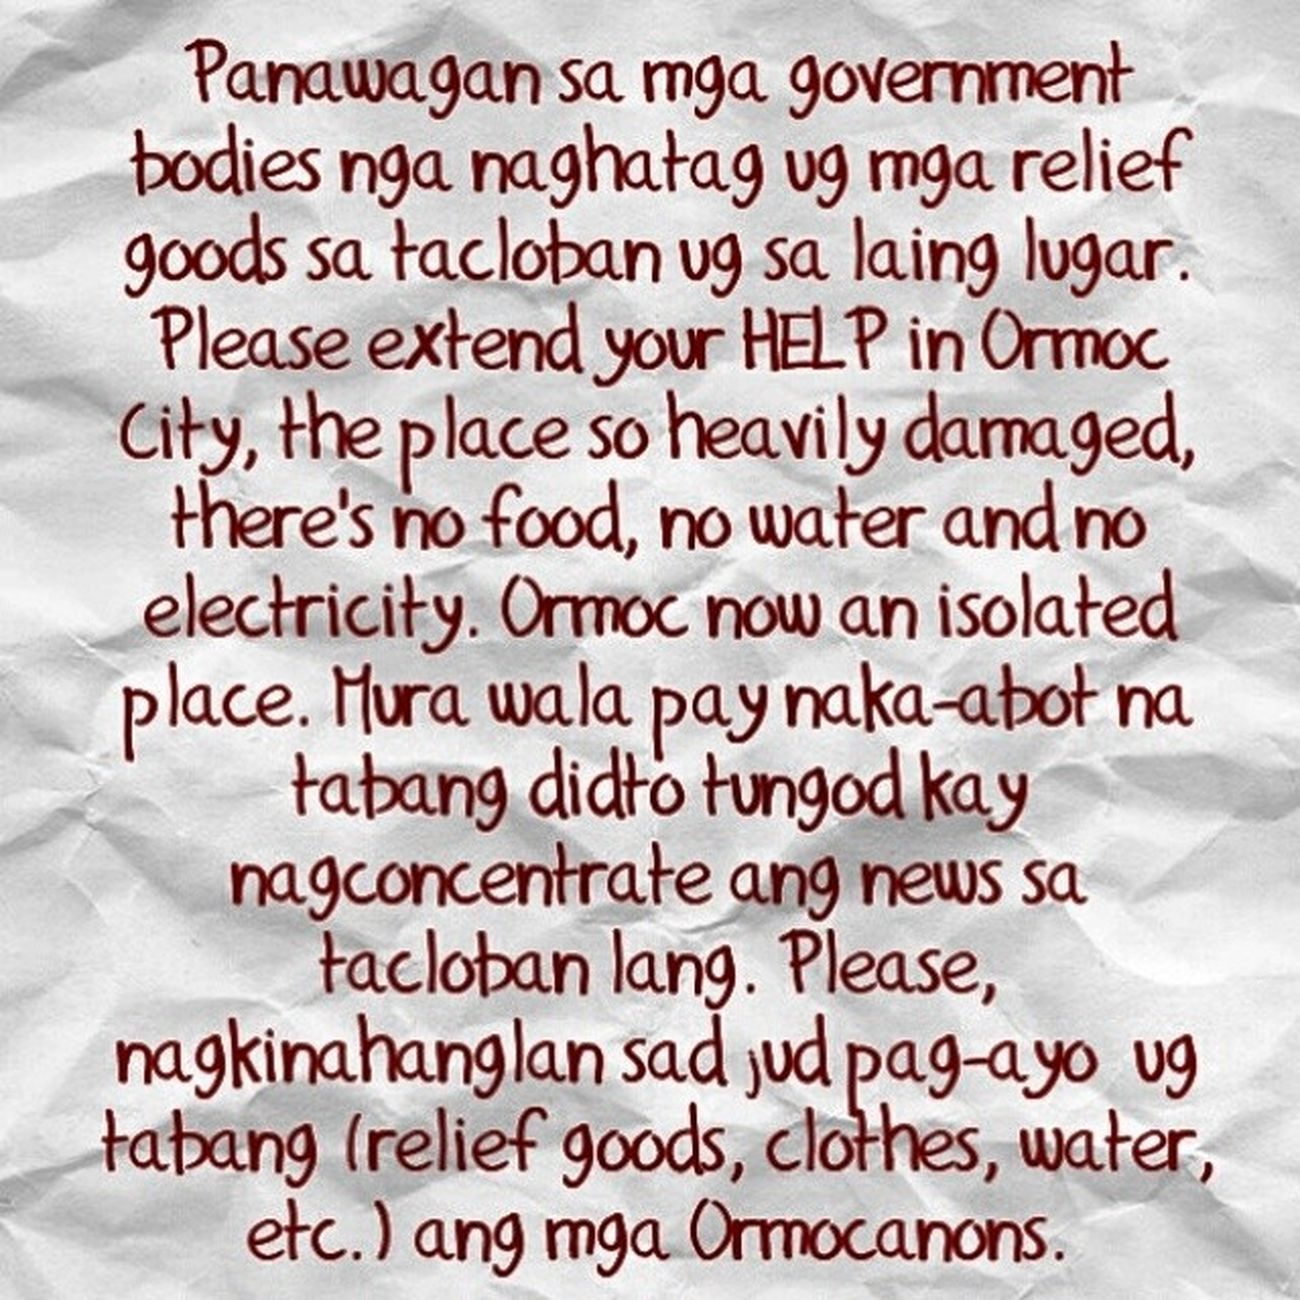 Panawagan - Bangonormoc Ormoc OrmocCity Typhoonyolanda help reliefgoods badlyneededhelp help panawagan governmentbodies media news gma gmanewstv abscbn cnn yolanda helpormoc